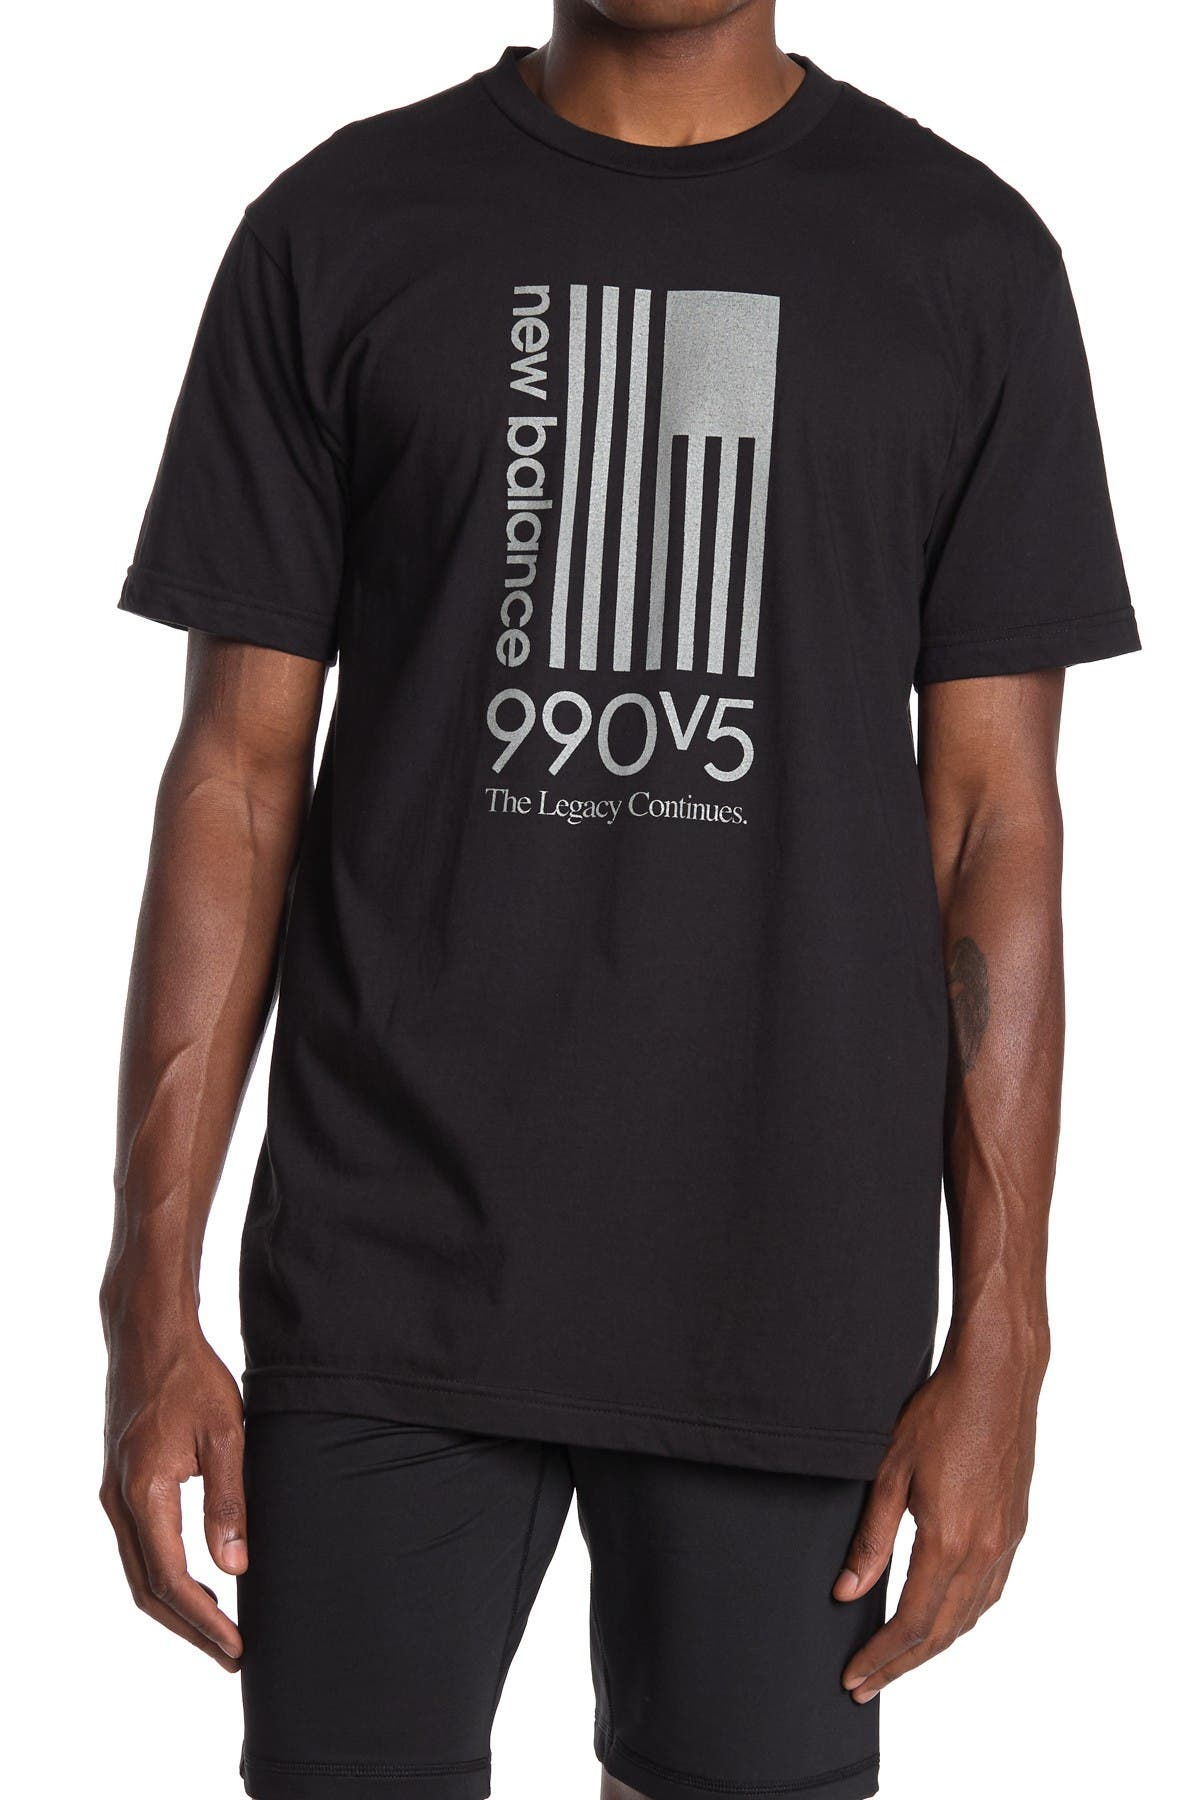 Image of New Balance 990 V5 Flag T-Shirt